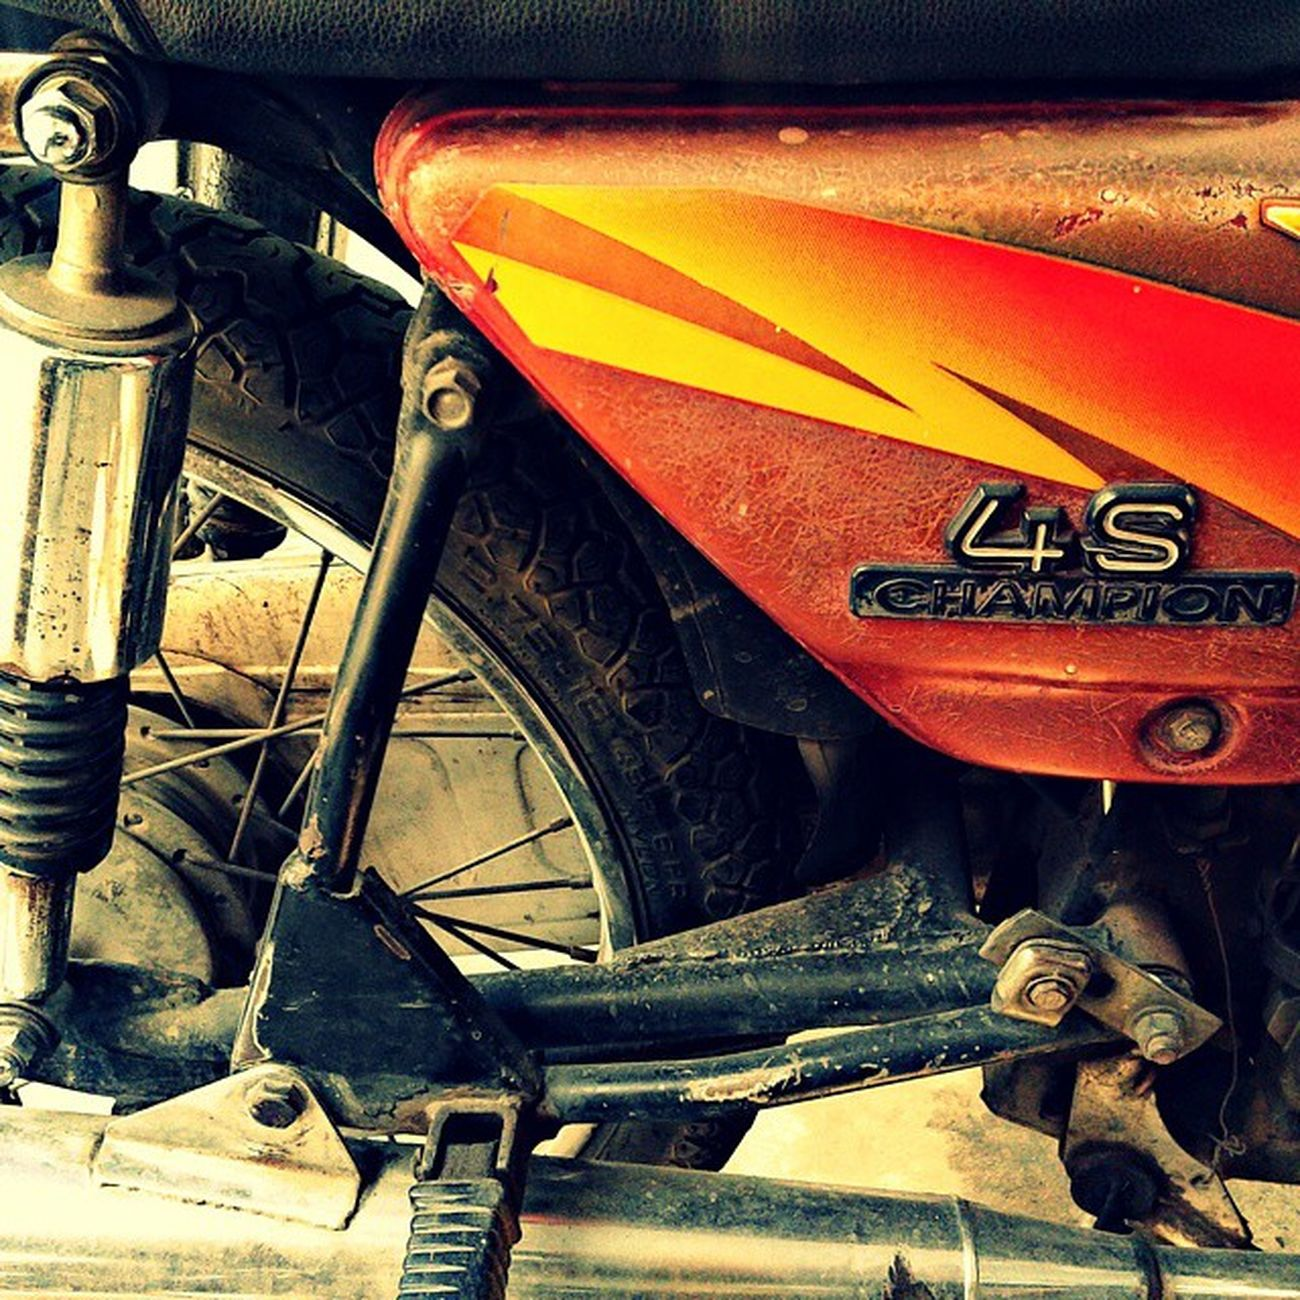 Old is gold.My Uncle's classy bike,love it. Bikestagram Biker Bikelove Bike Sport Engine Wheels Carburetor Spoke Silencer Rugged Scratches Heavy Iron Fourstroke Kawasaki Bajaj Japanesetechnology Mylove Springs Classic Champion Oldisgold Petrol Travel activeinstagoodmaintenancerepaircare